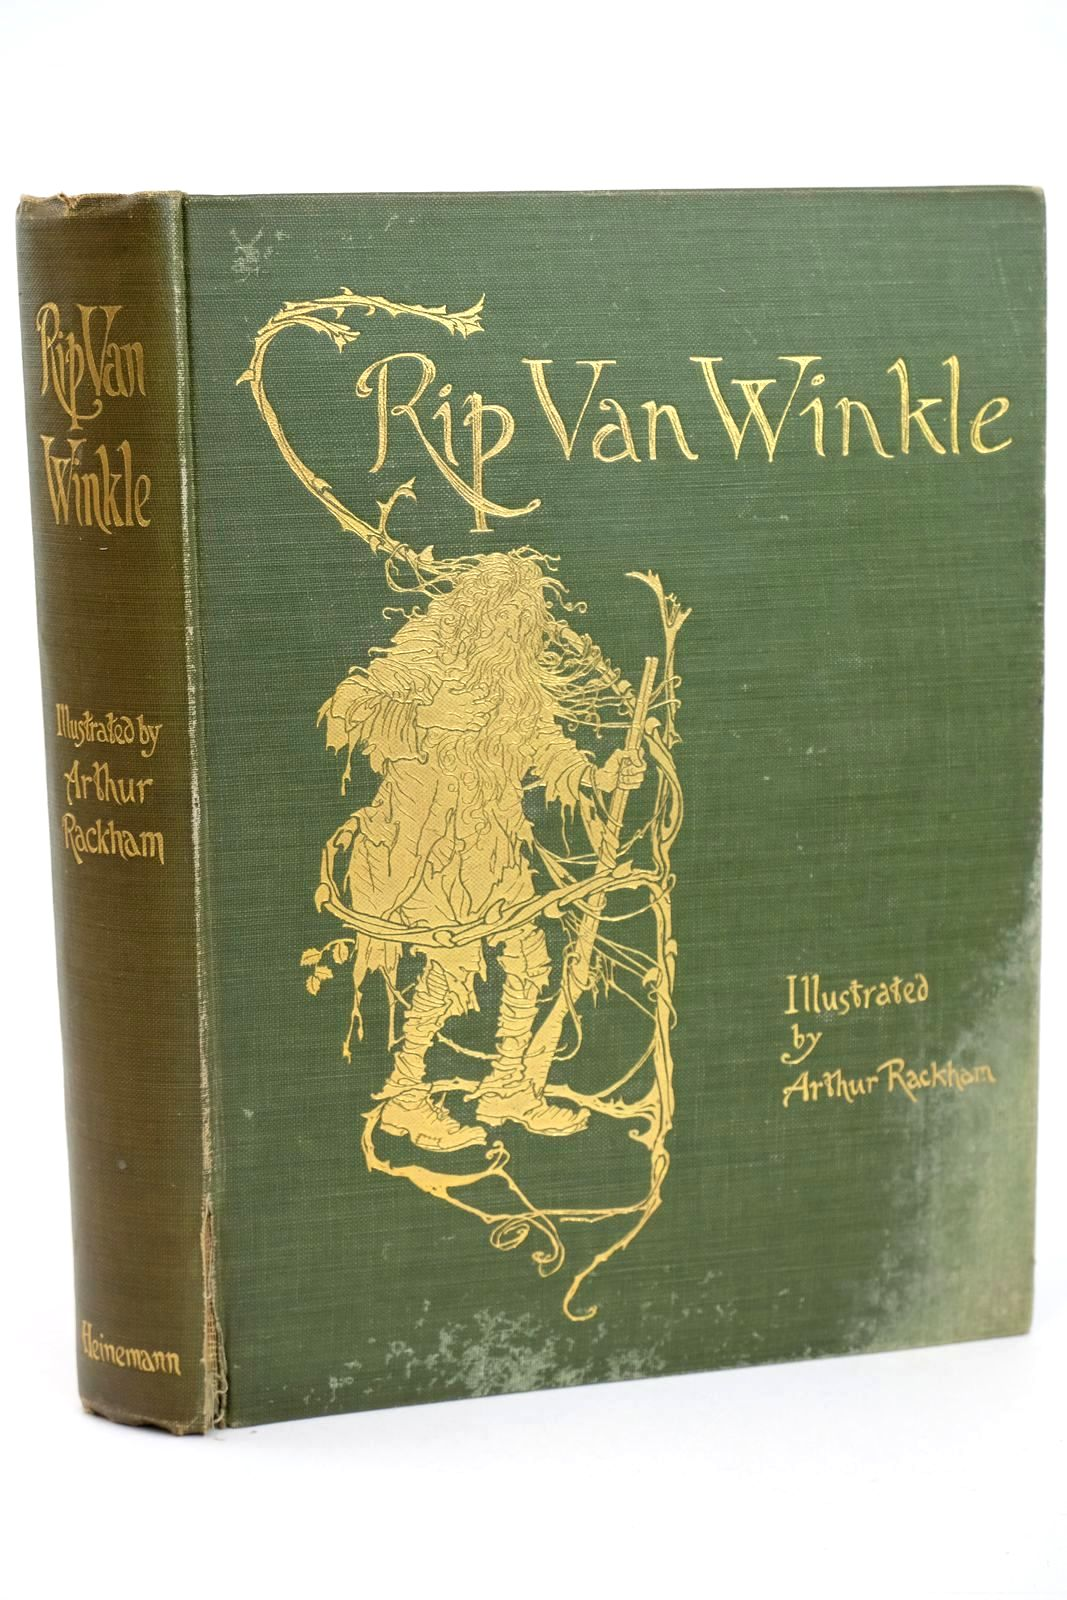 Photo of RIP VAN WINKLE written by Irving, Washington illustrated by Rackham, Arthur published by William Heinemann (STOCK CODE: 1318503)  for sale by Stella & Rose's Books